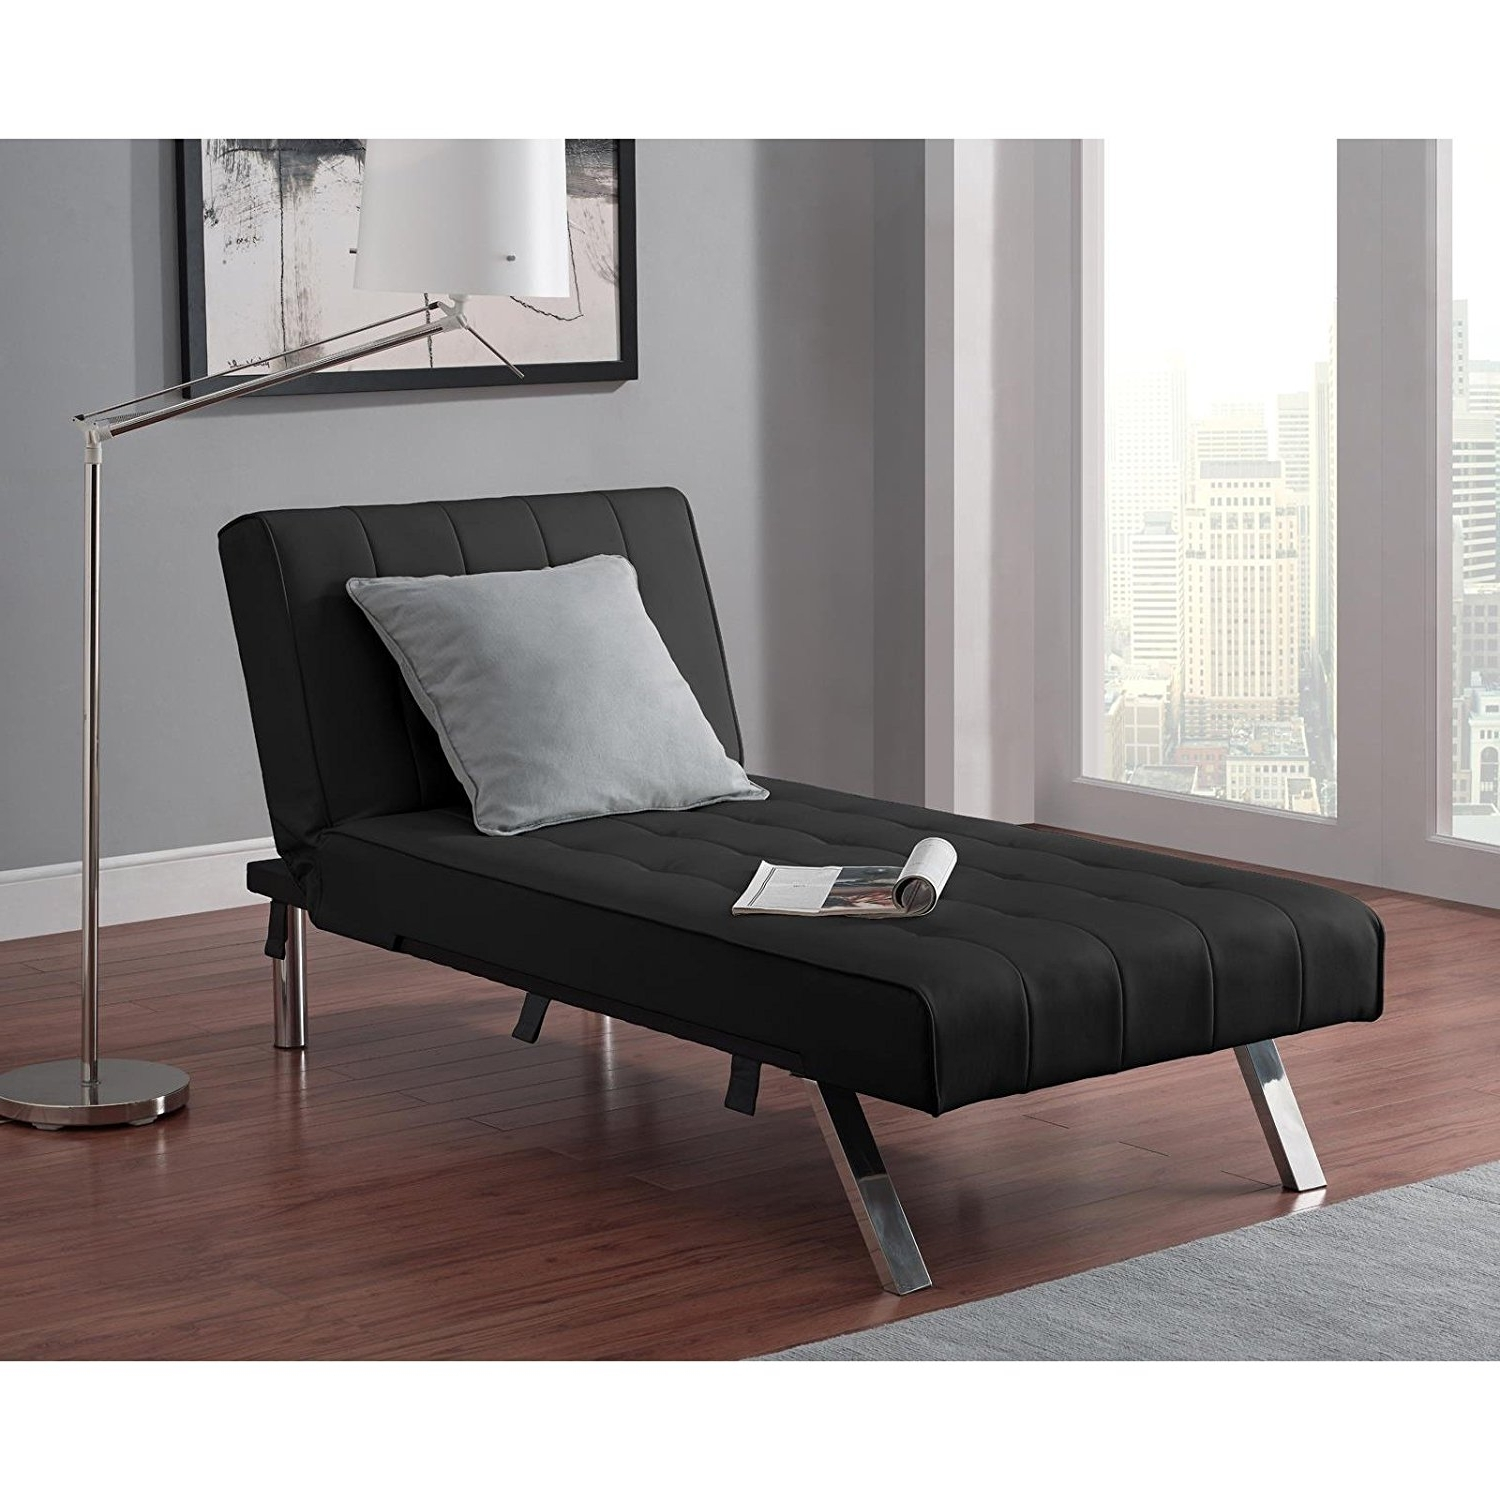 Most Recently Released Futons With Chaise Lounge Throughout Amazon: Emily Futon With Chaise Lounger Super Bonus Set Black (View 2 of 15)